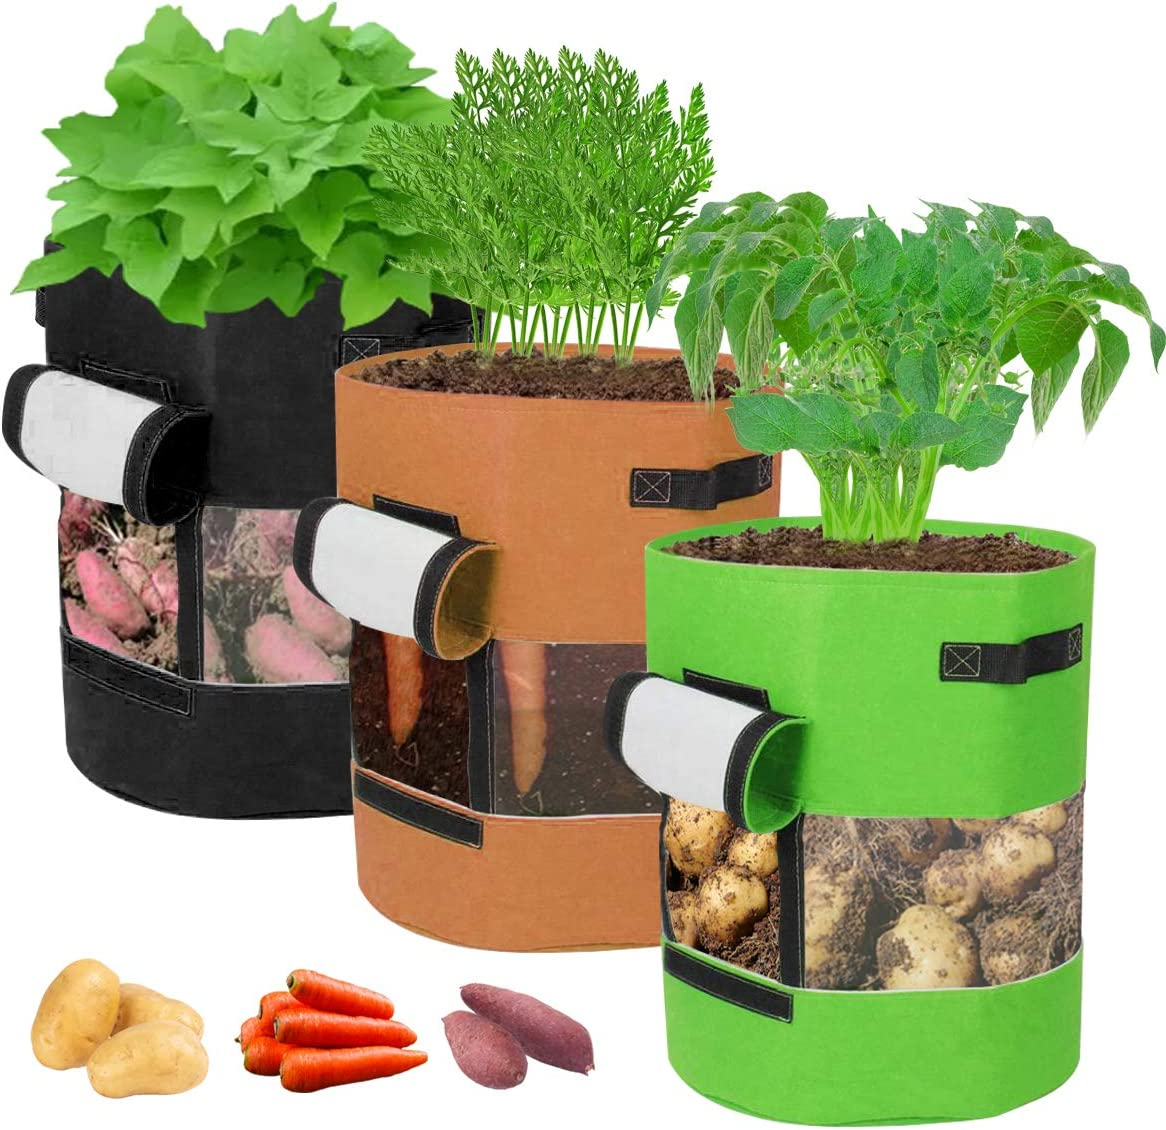 FANCYSEEU 3 Pack 10 Gallon Potato Grow Bags Visualization Heavy Duty Thickened Fabric Planting Pots with Flap and Handles Garden Vegetables Planter Bags for Potato Tomato and Other Vegetables